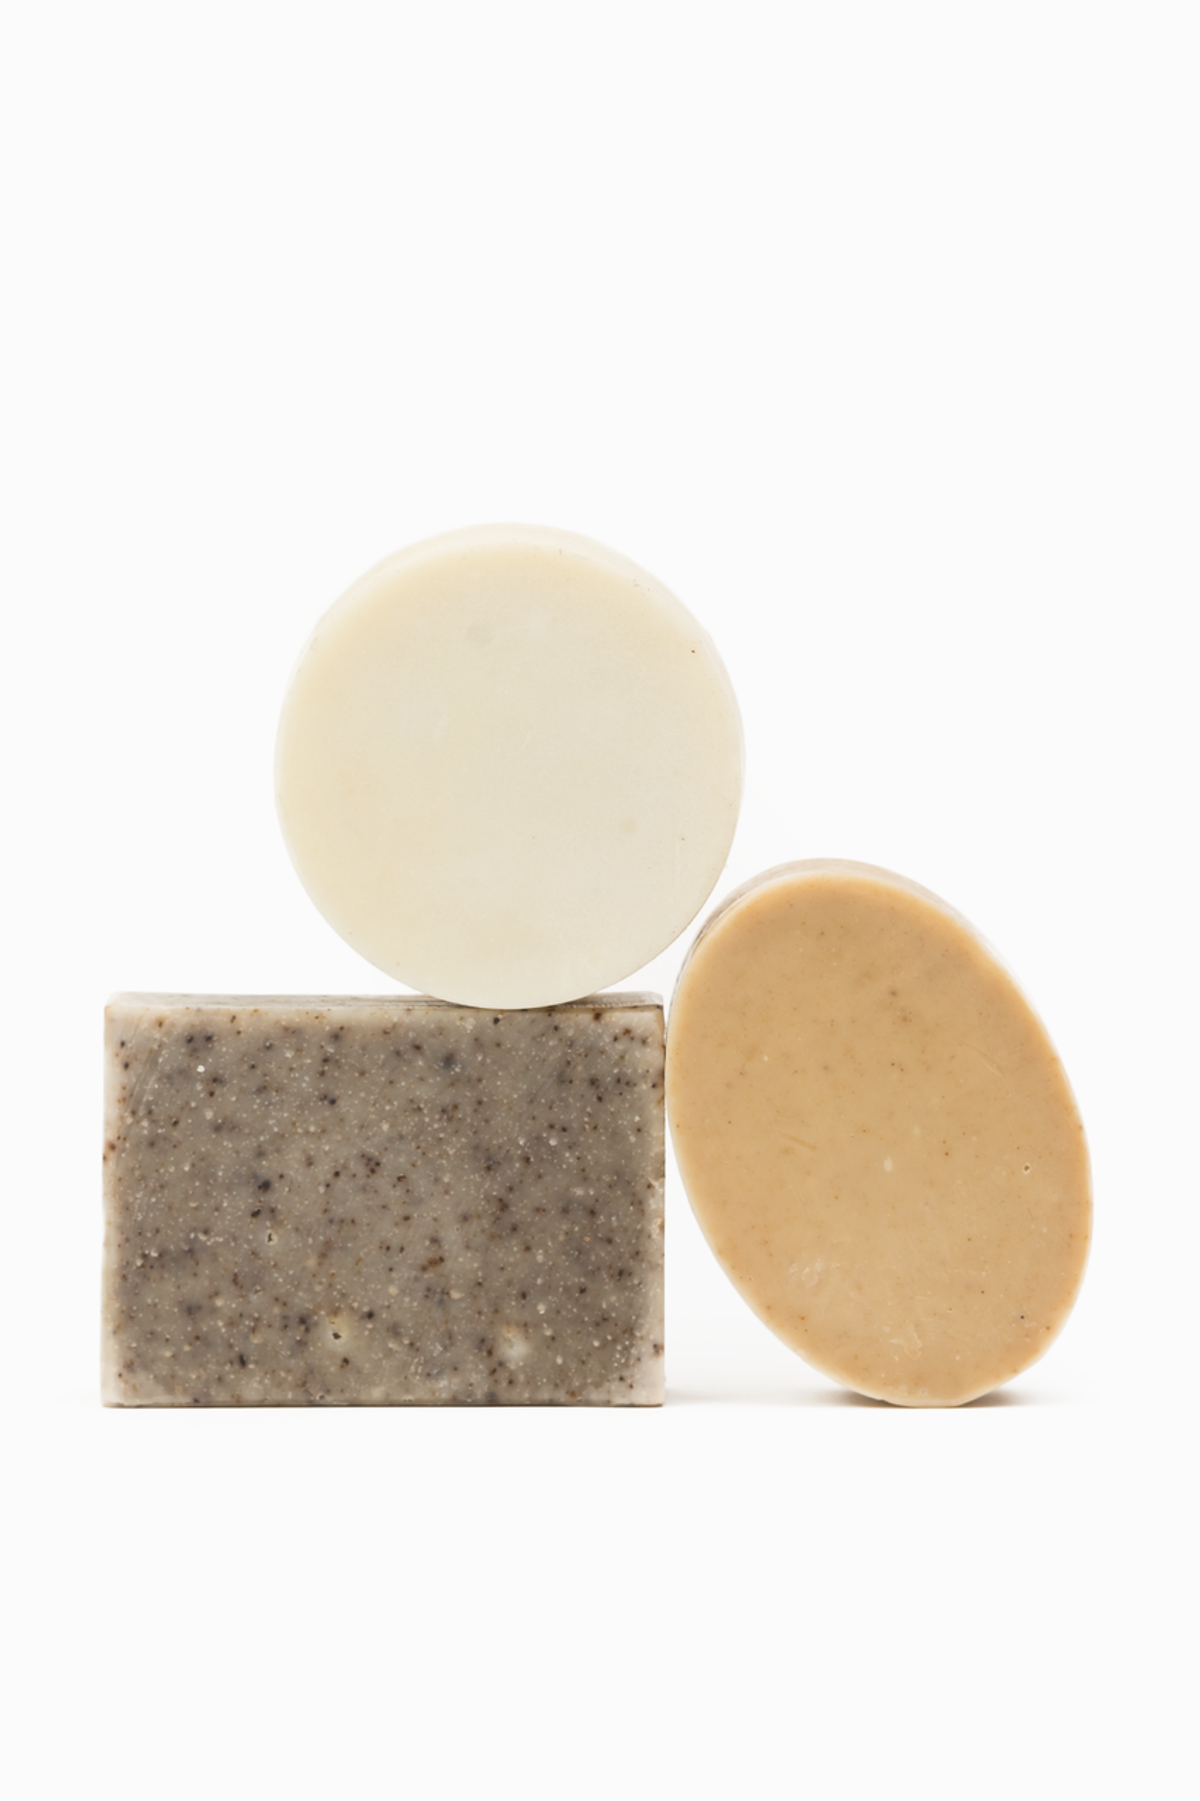 Handcrafted hand & body soaps.   Rectangle - Shea Butter Soap Ingredients: extra virgin olive oil, palm oil, unrefined extra virgin coconut oil, unrefined shea butter, sodium hydroxide, alkanet root, sodium lactate naturally derived from beets, purified water  Circle - Kaolin Clay Soap Ingredients: extra virgin olive oil, palm oil, unrefined extra virgin coconut oil, sunflower oil, unrefined shea butter, castor oil, sodium hydroxide, white kaolin clay, sodium lactate naturally derived from beets, purified water  Oval - Aloe Soap Ingredients: extra virgin olive oil, palm oil, unrefined extra virgin coconut oil, unrefined shea butter, sodium hydroxide, aloe, sodium lactate naturally derived from beets, purified water